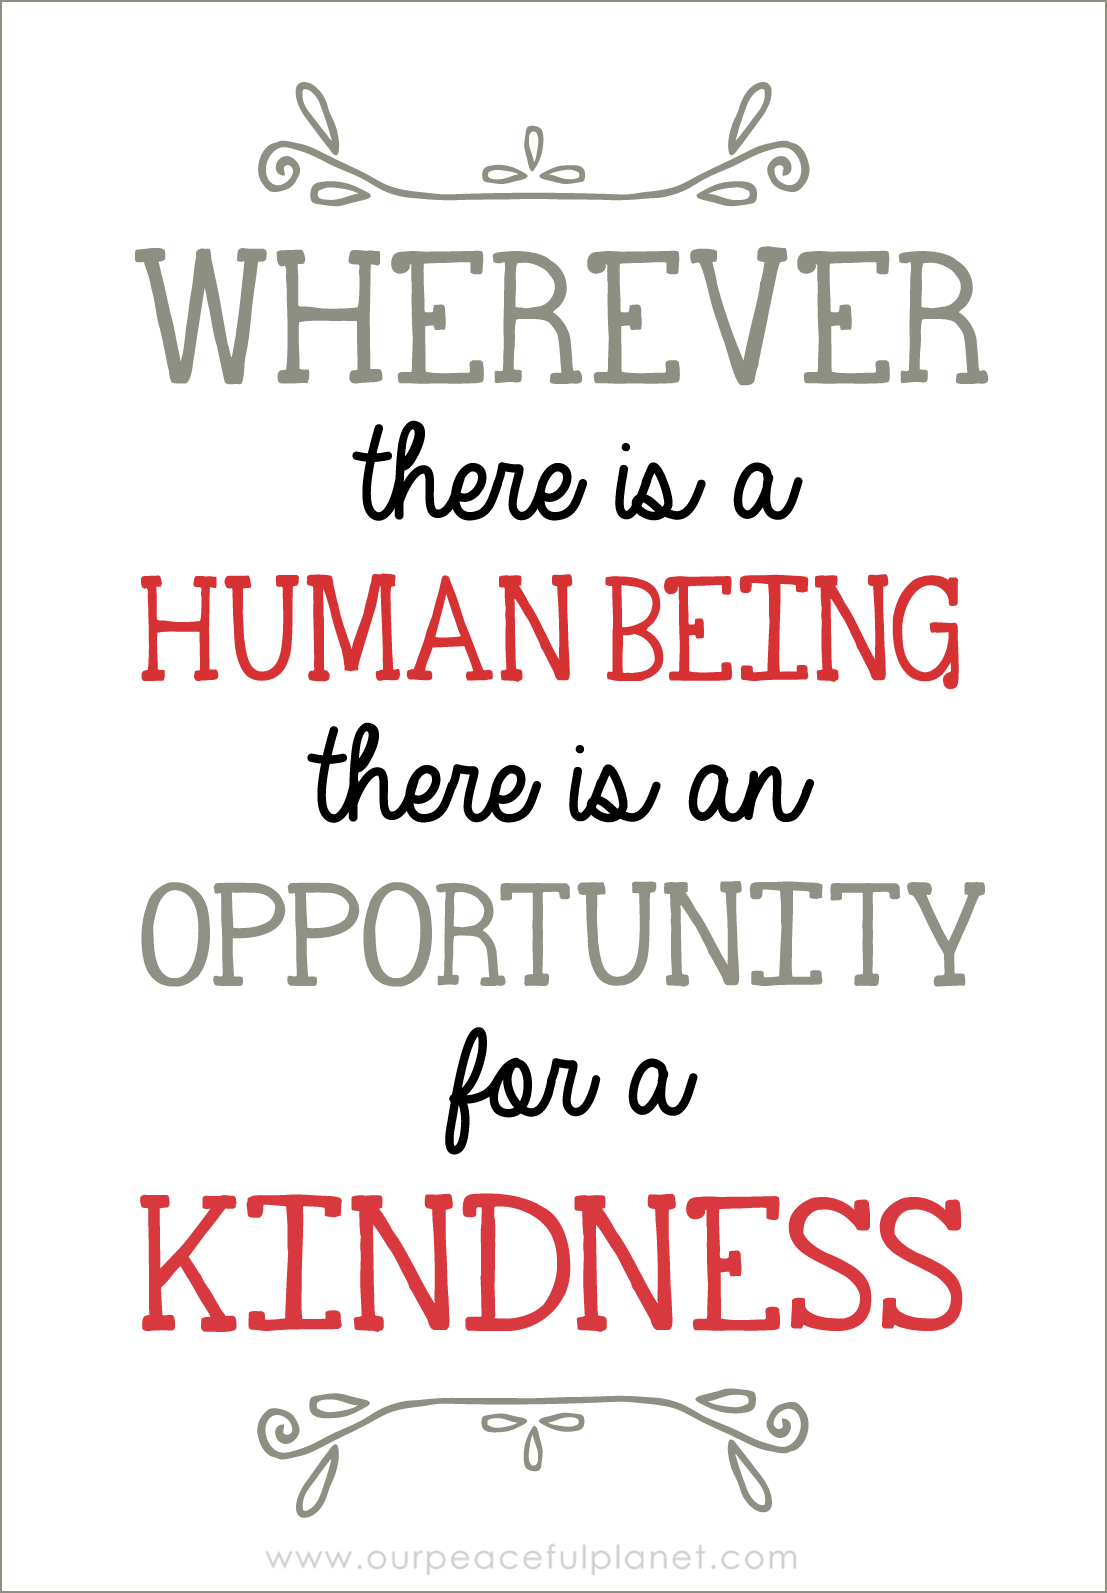 Whereever there is a human being there an opportunity for a kindless.